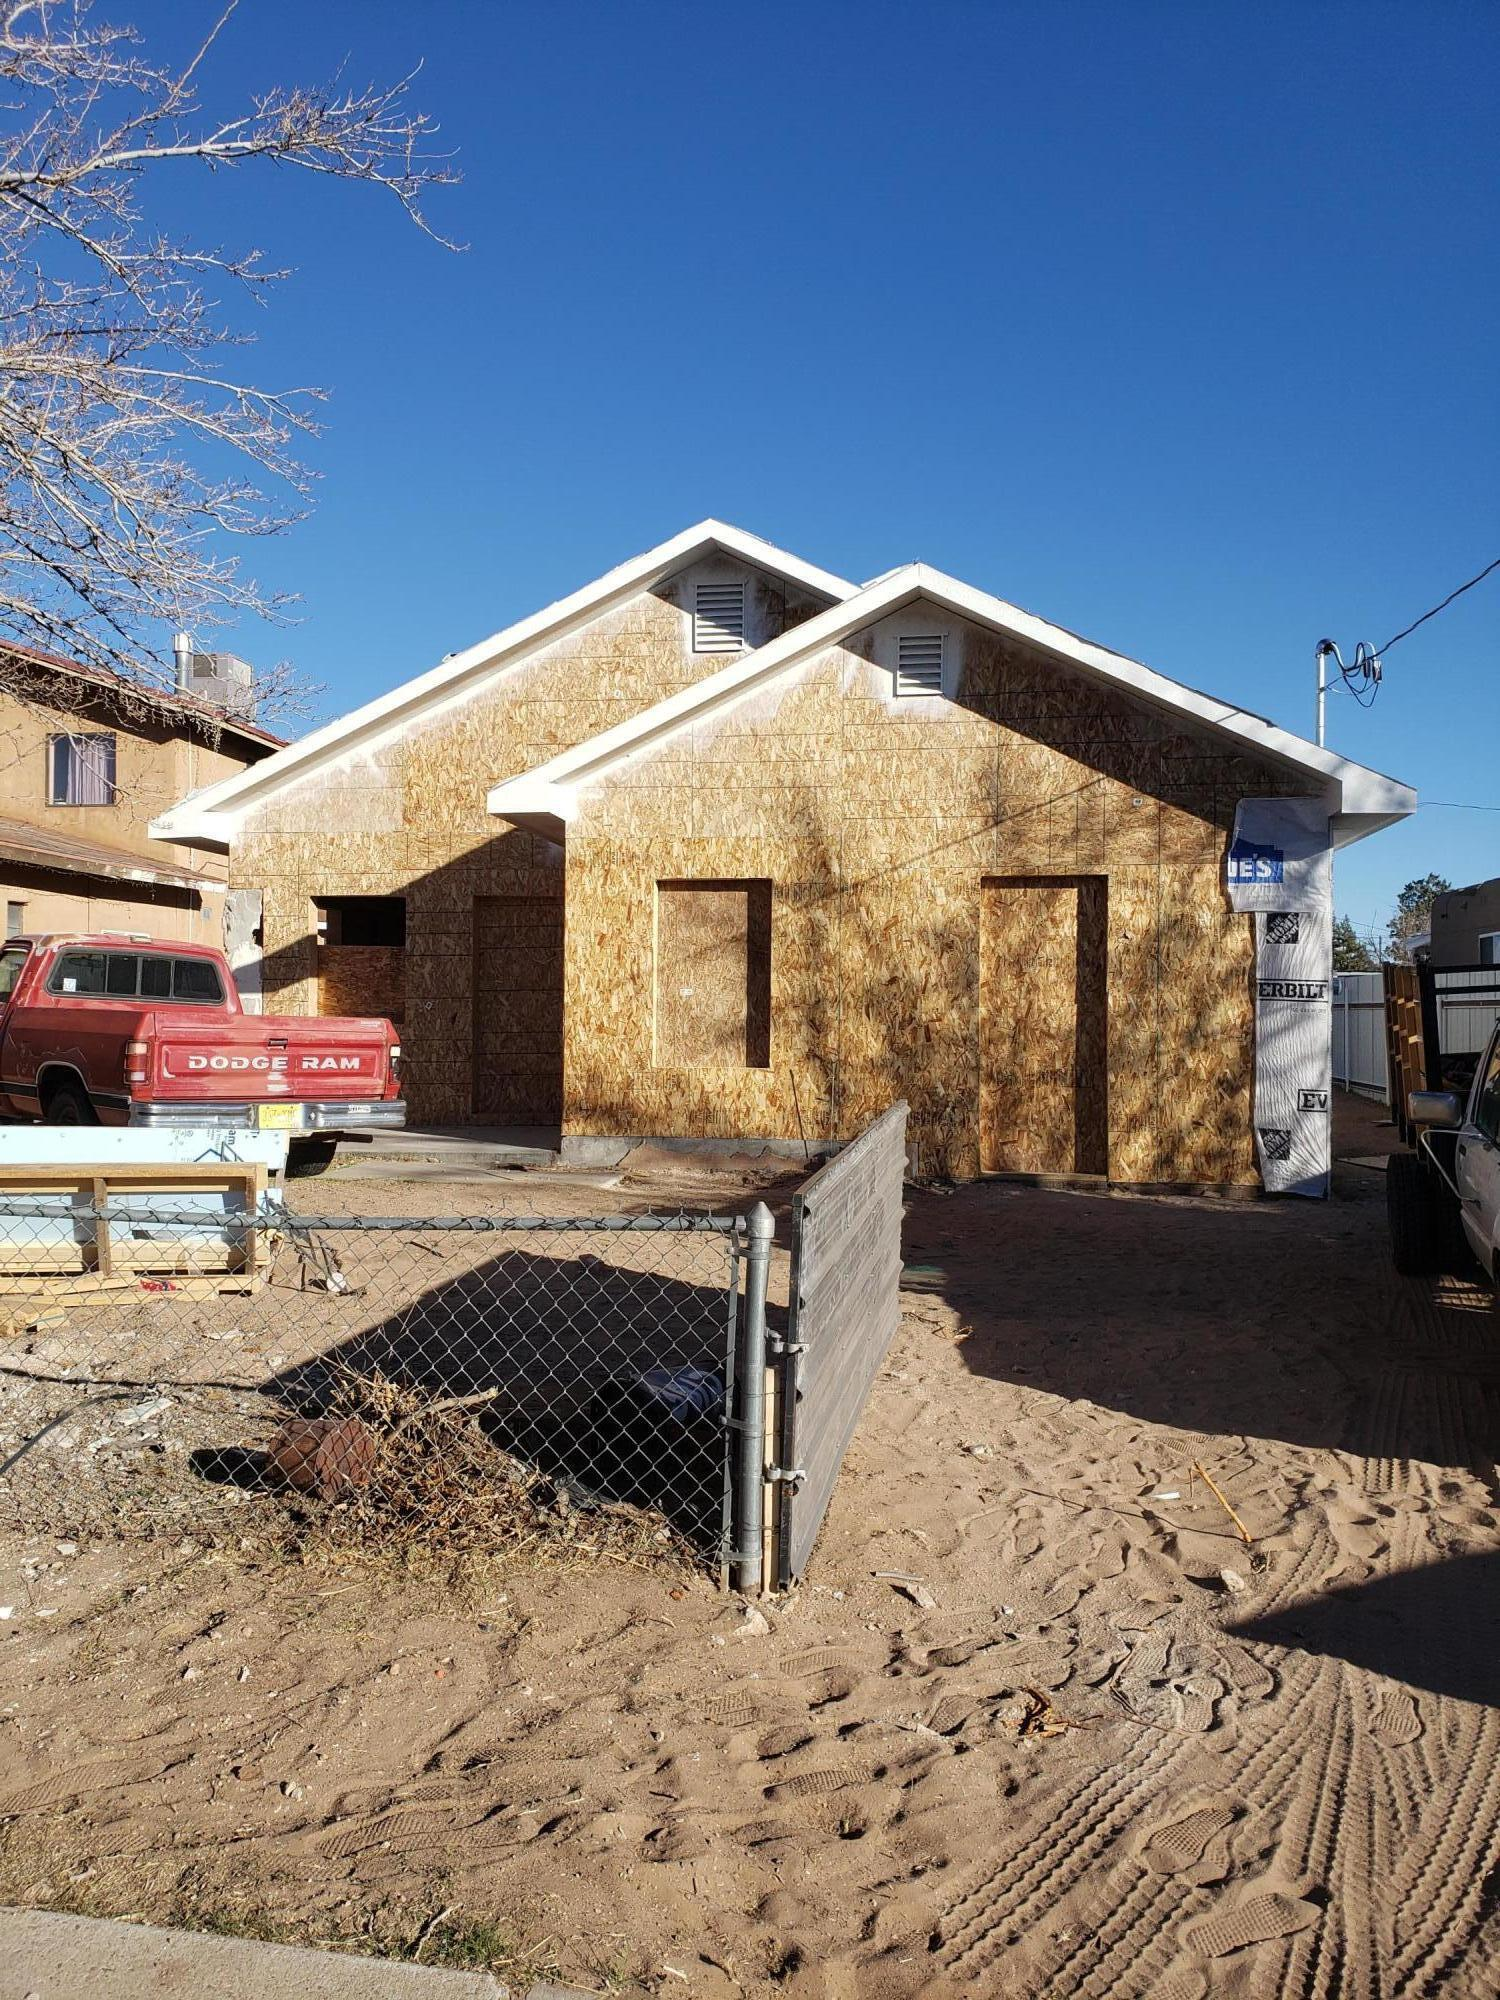 This is a shell. Owner has the plans but has not been able to complete. He is selling as is. Roof has been changed from flat to pitched with attic trusses. Electrical Panel has been updated but house is not wired. Home has been gutted and set up for complete remodel.City Utilities. Easy Commute. Once complete can be a very nice home. ***Please be advised it is a construction zone enter at own risk*** ***Seller is Related to Listing Agent***